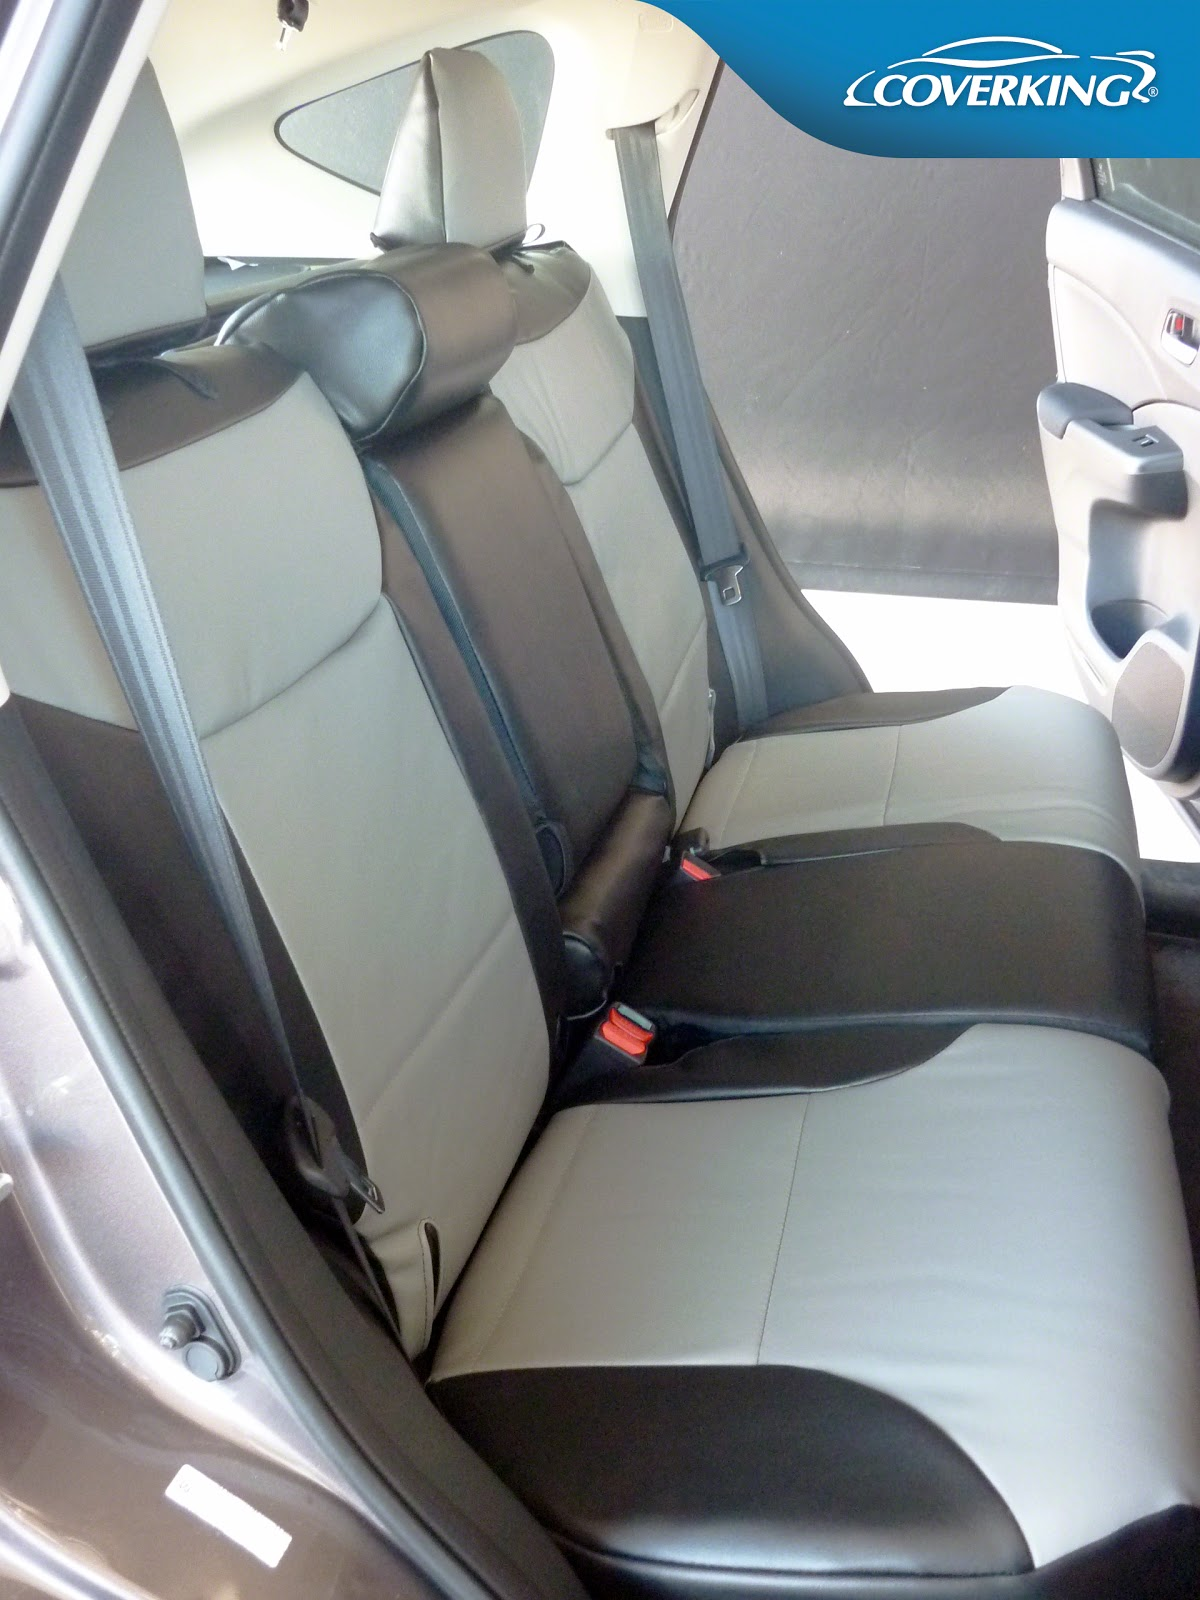 Custom-fit Coverking seat covers for CR-V including 2015 models